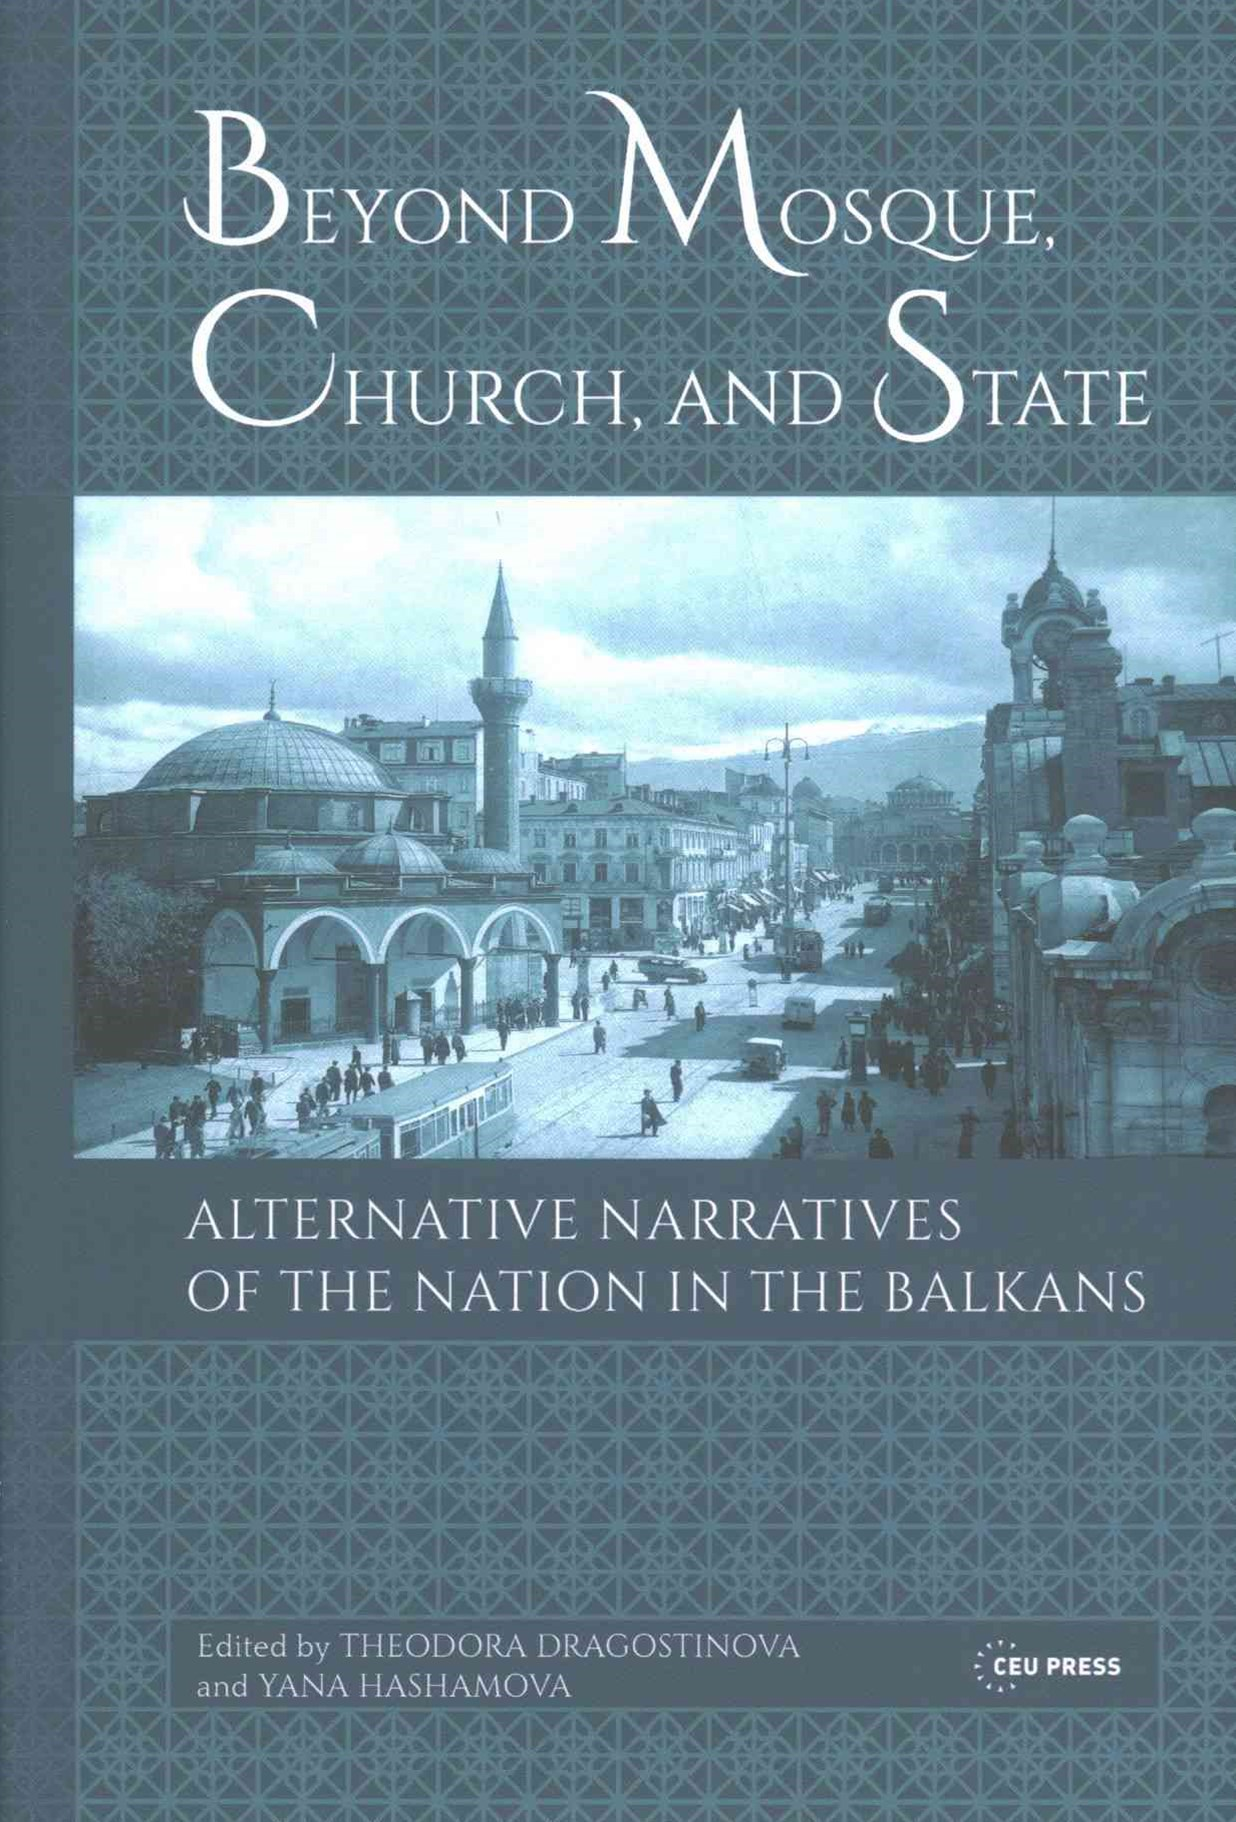 Beyond Mosque, Church, and State